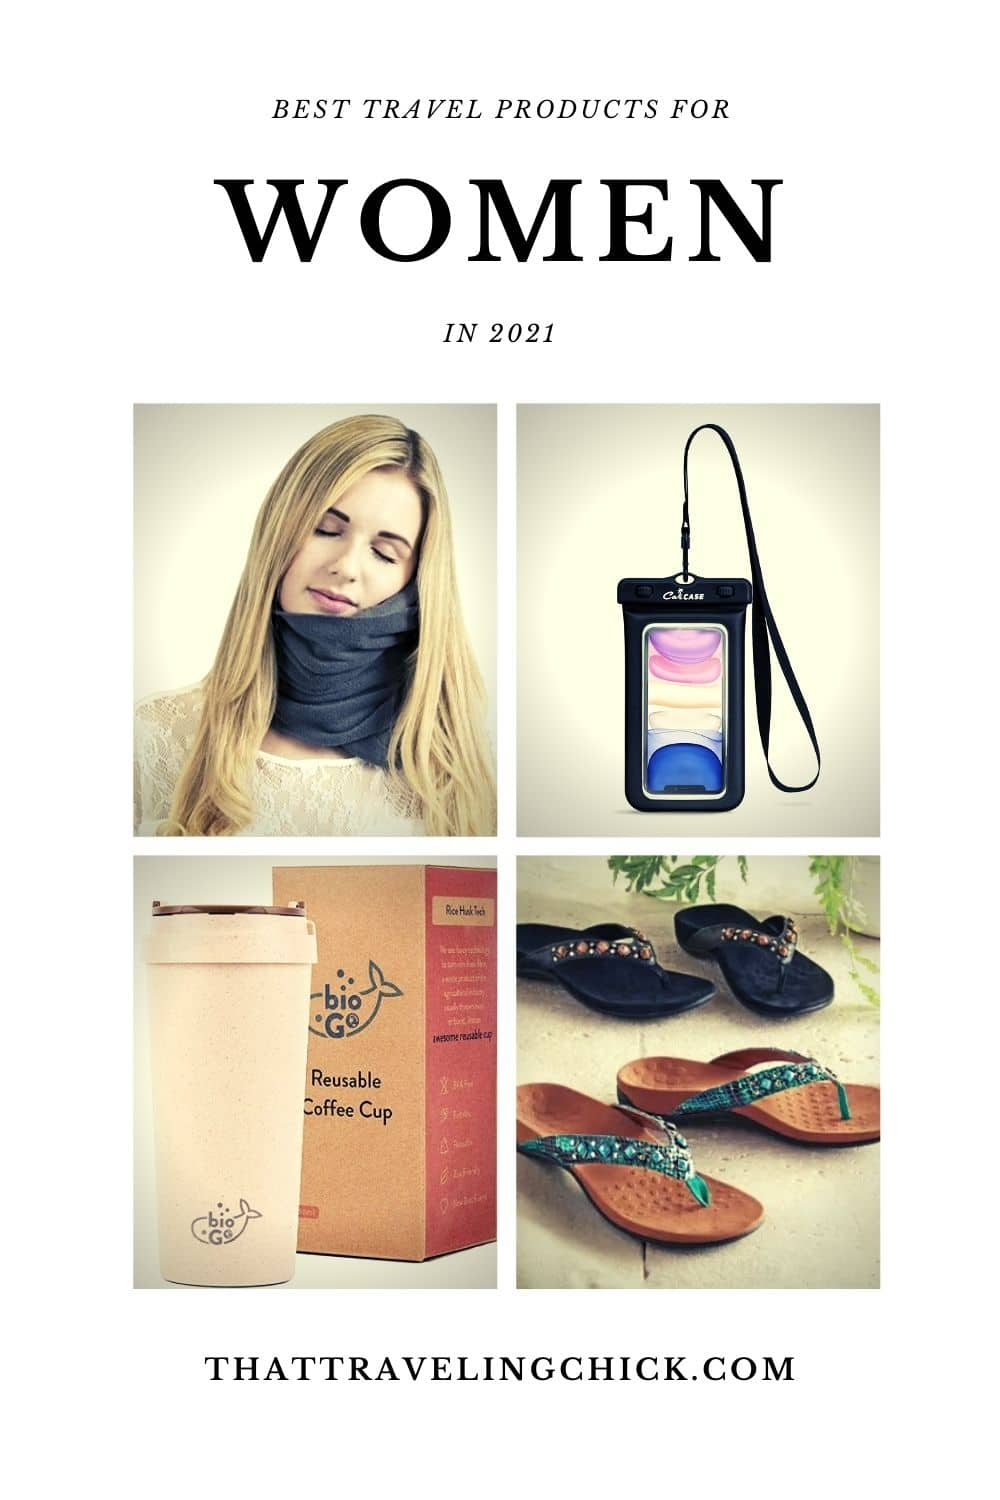 Best Travel Products for Women in 2021 #travelproducts